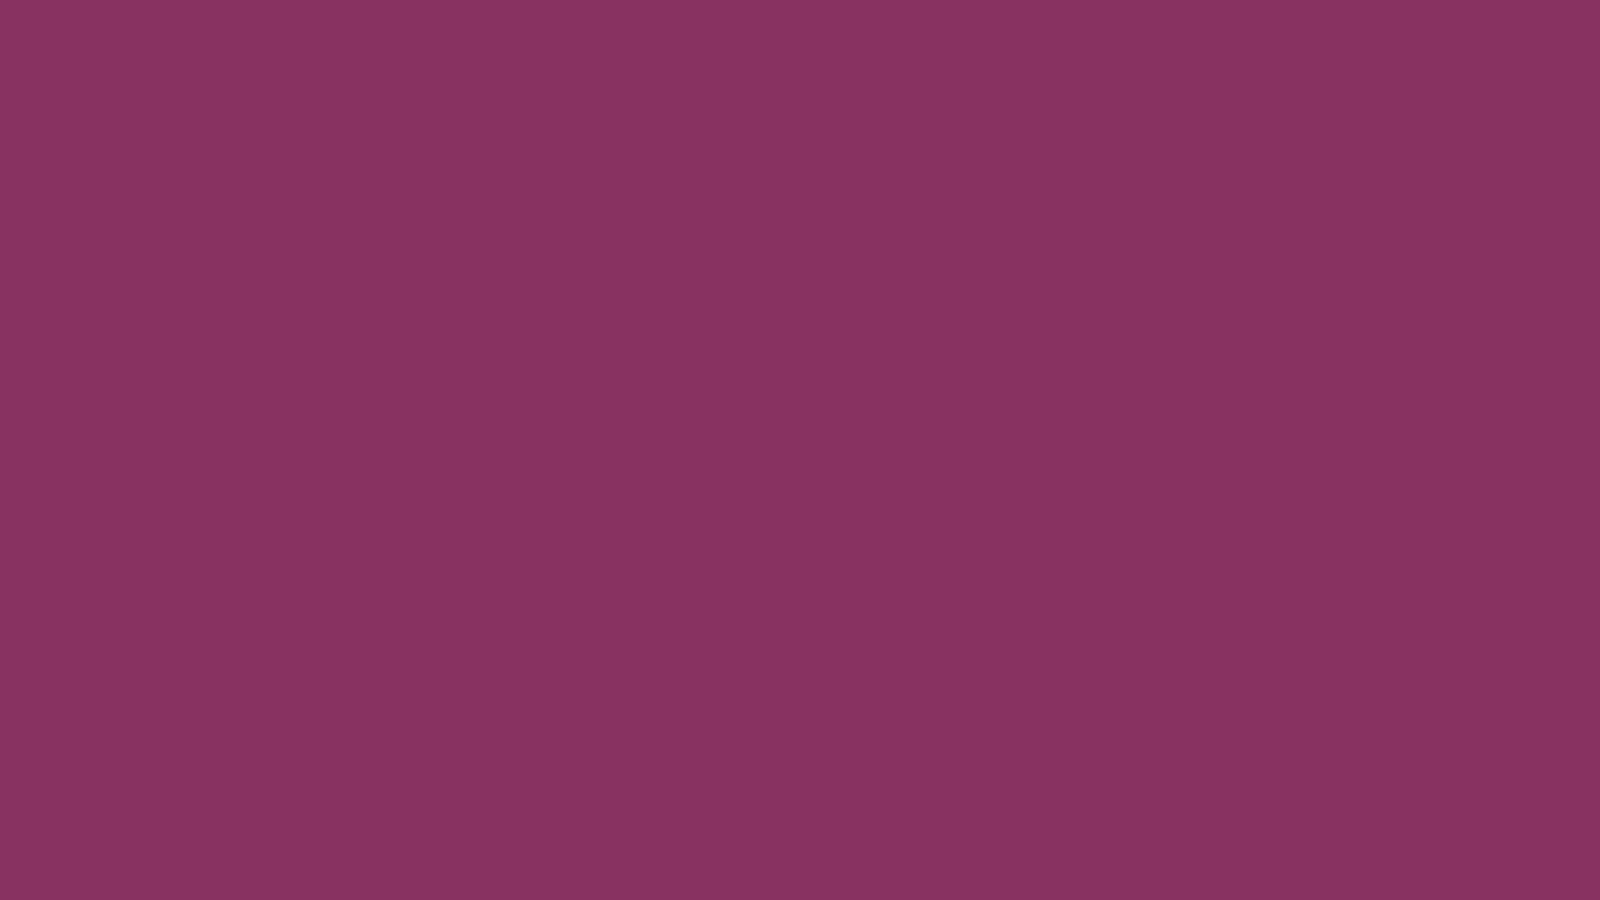 1600x900 Boysenberry Solid Color Background